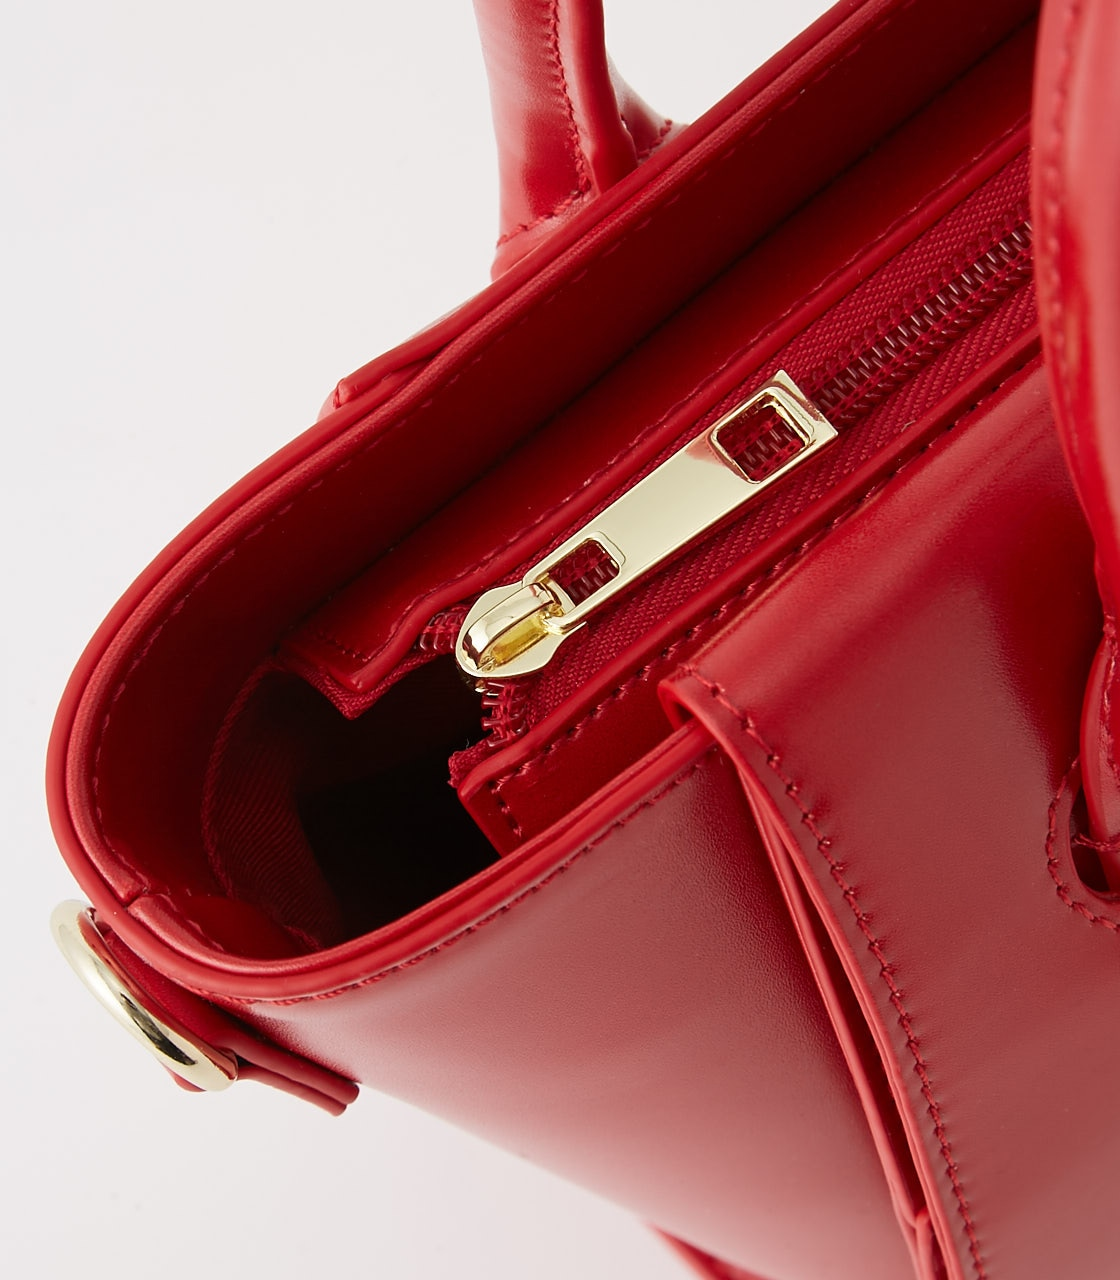 【AZUL BY MOUSSY】BELT DESIGN HAND BAG 詳細画像 RED 4